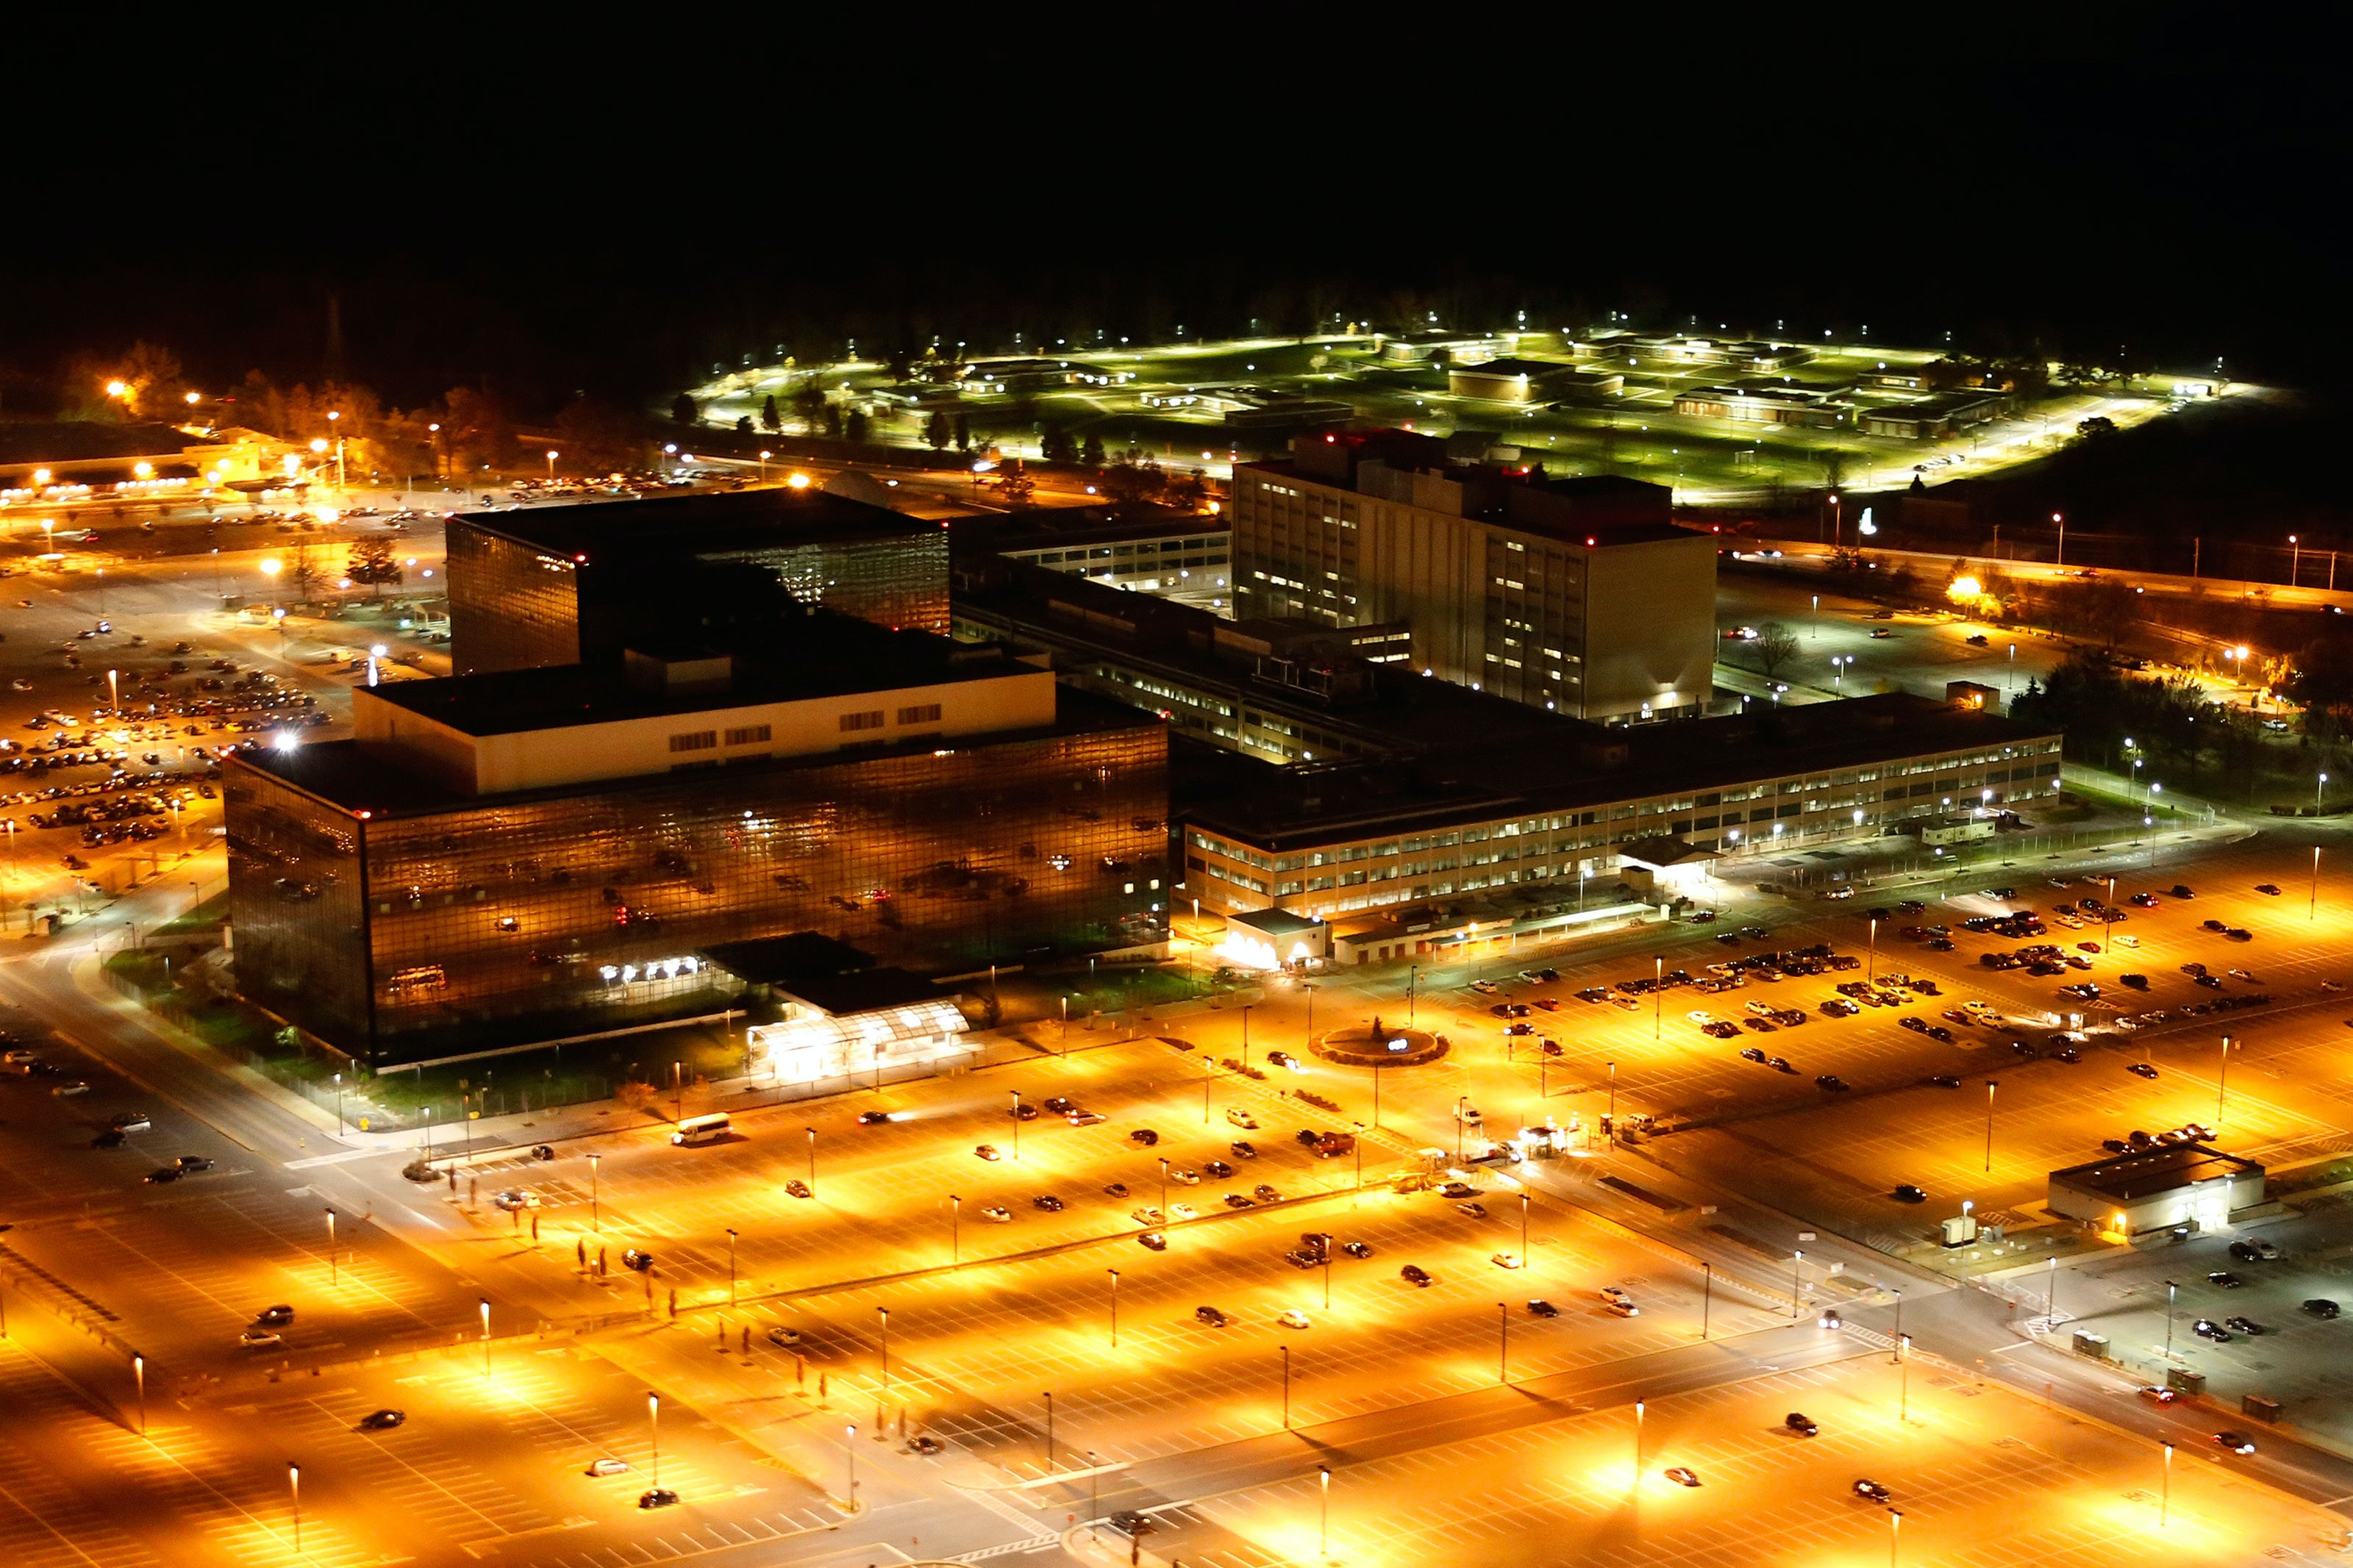 Best place to find nsa